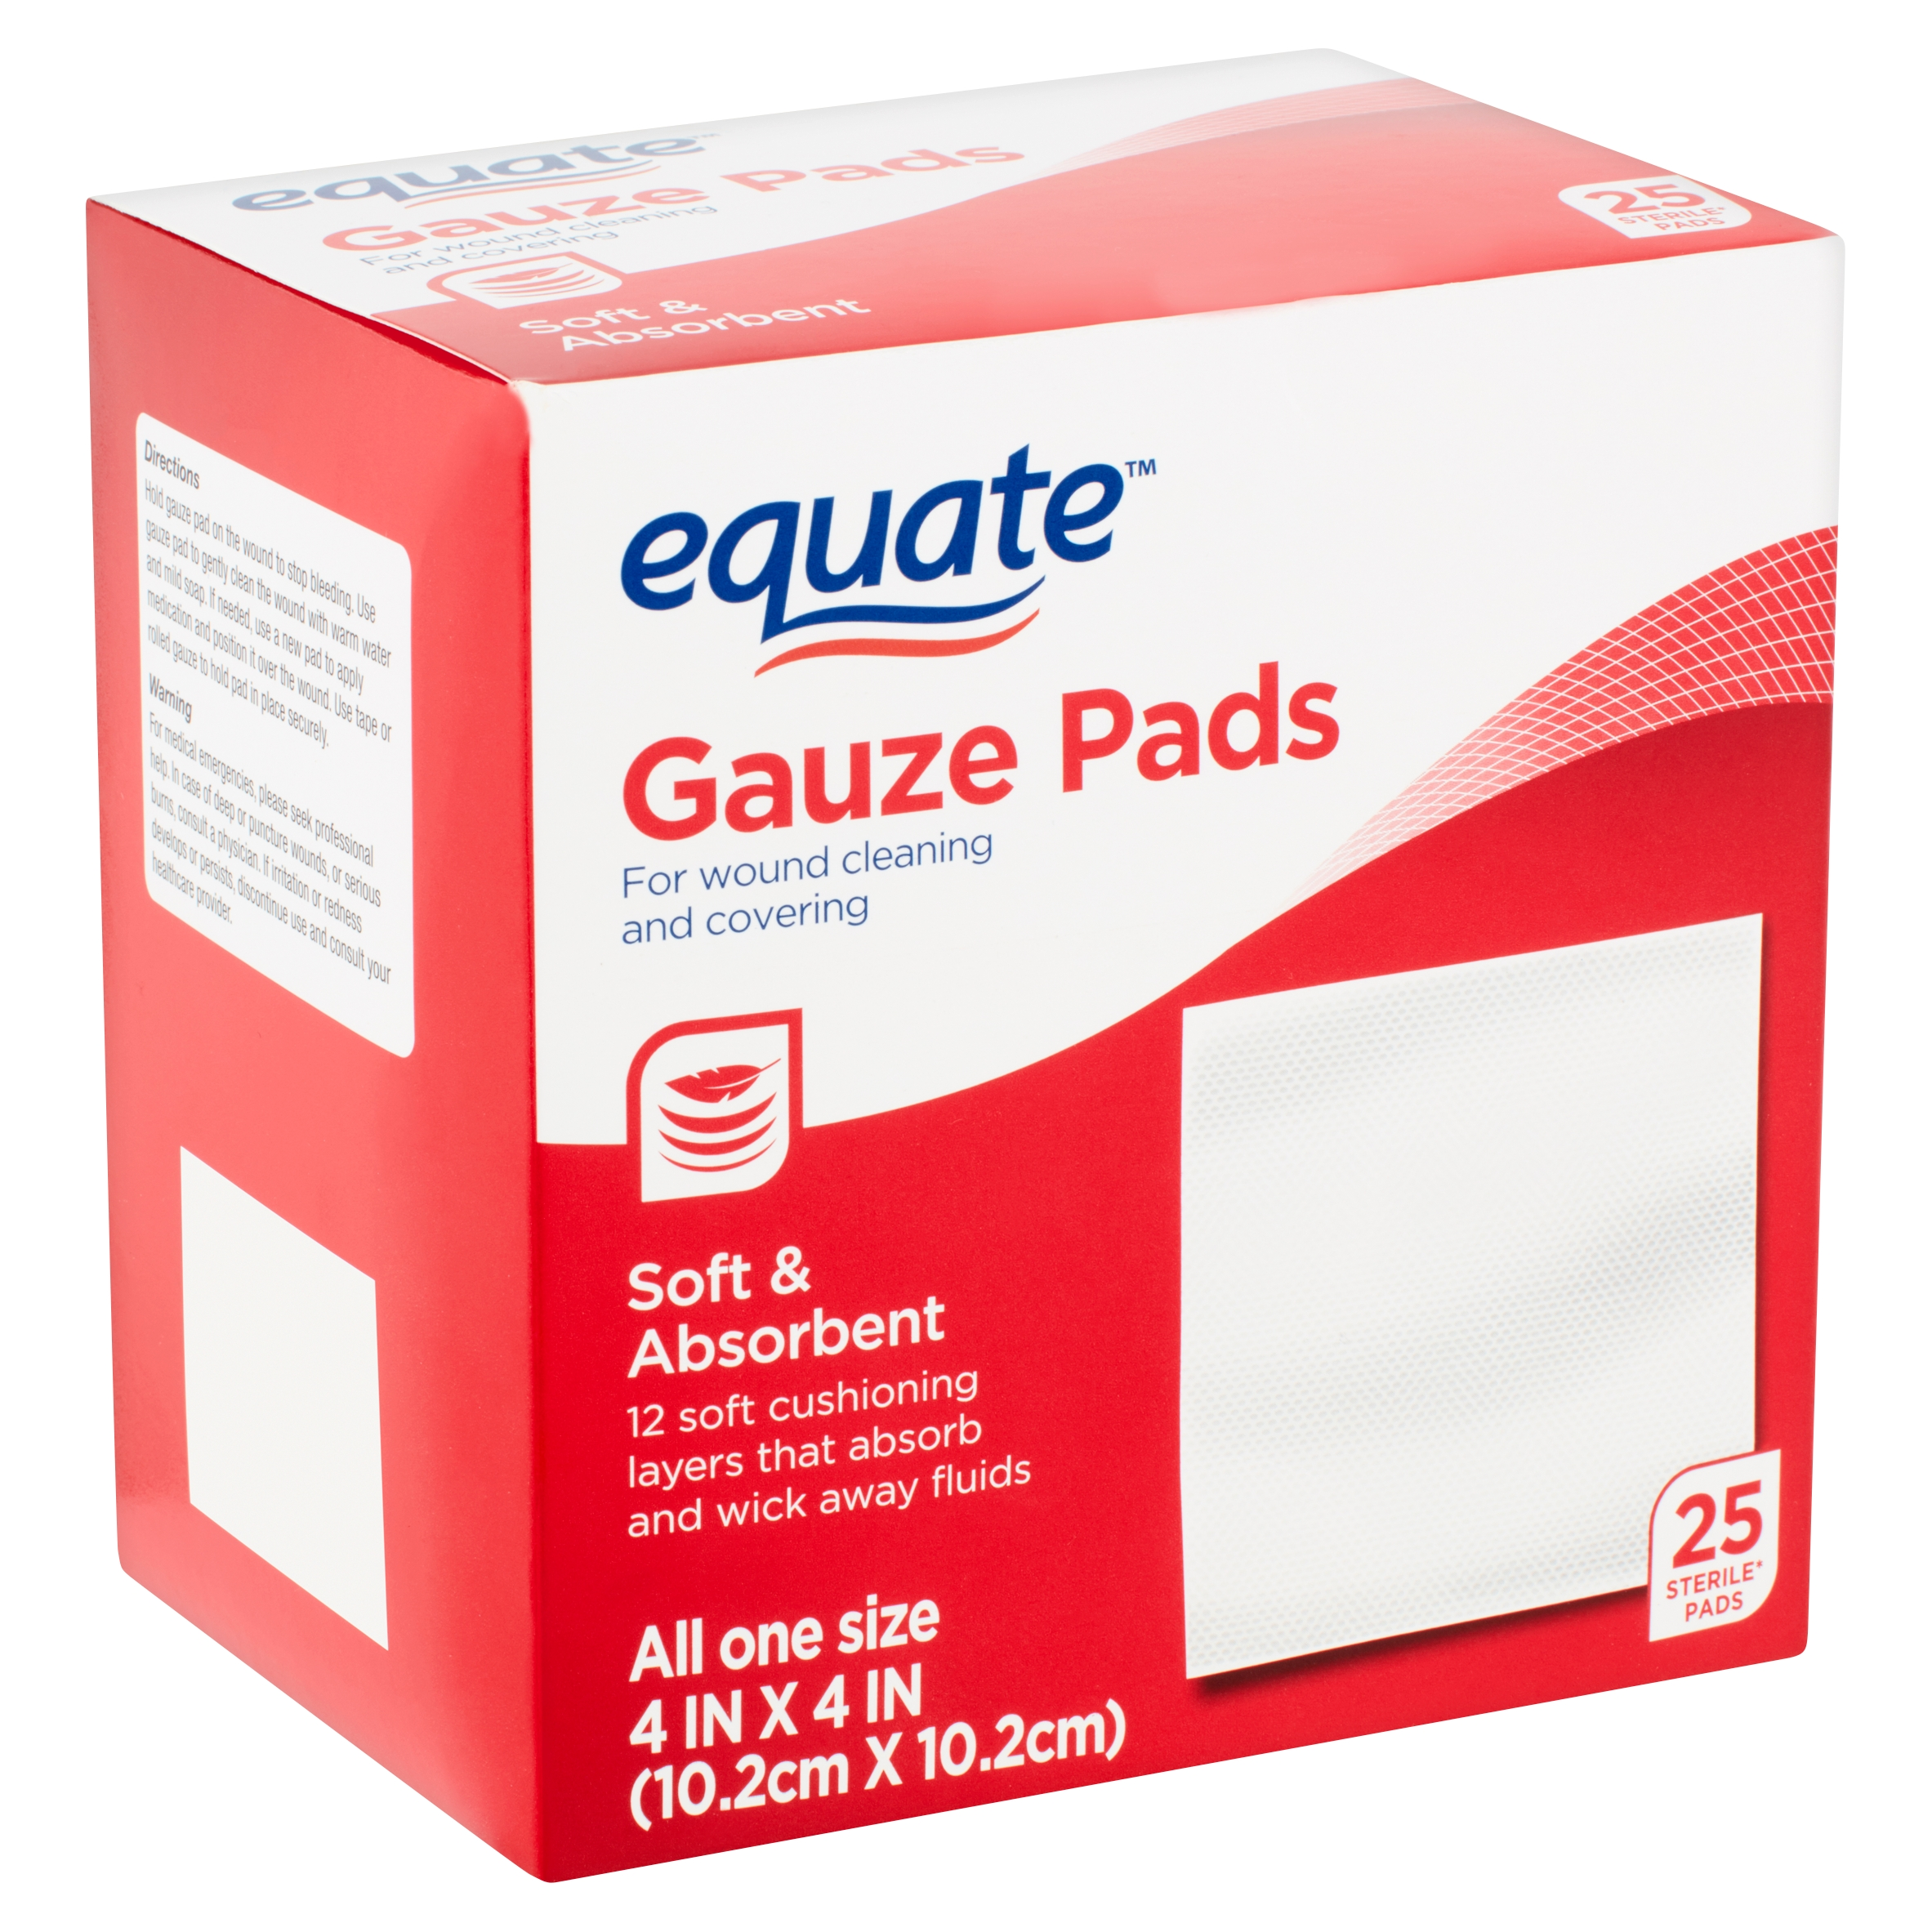 Equate Gauze Pads, 25 Count